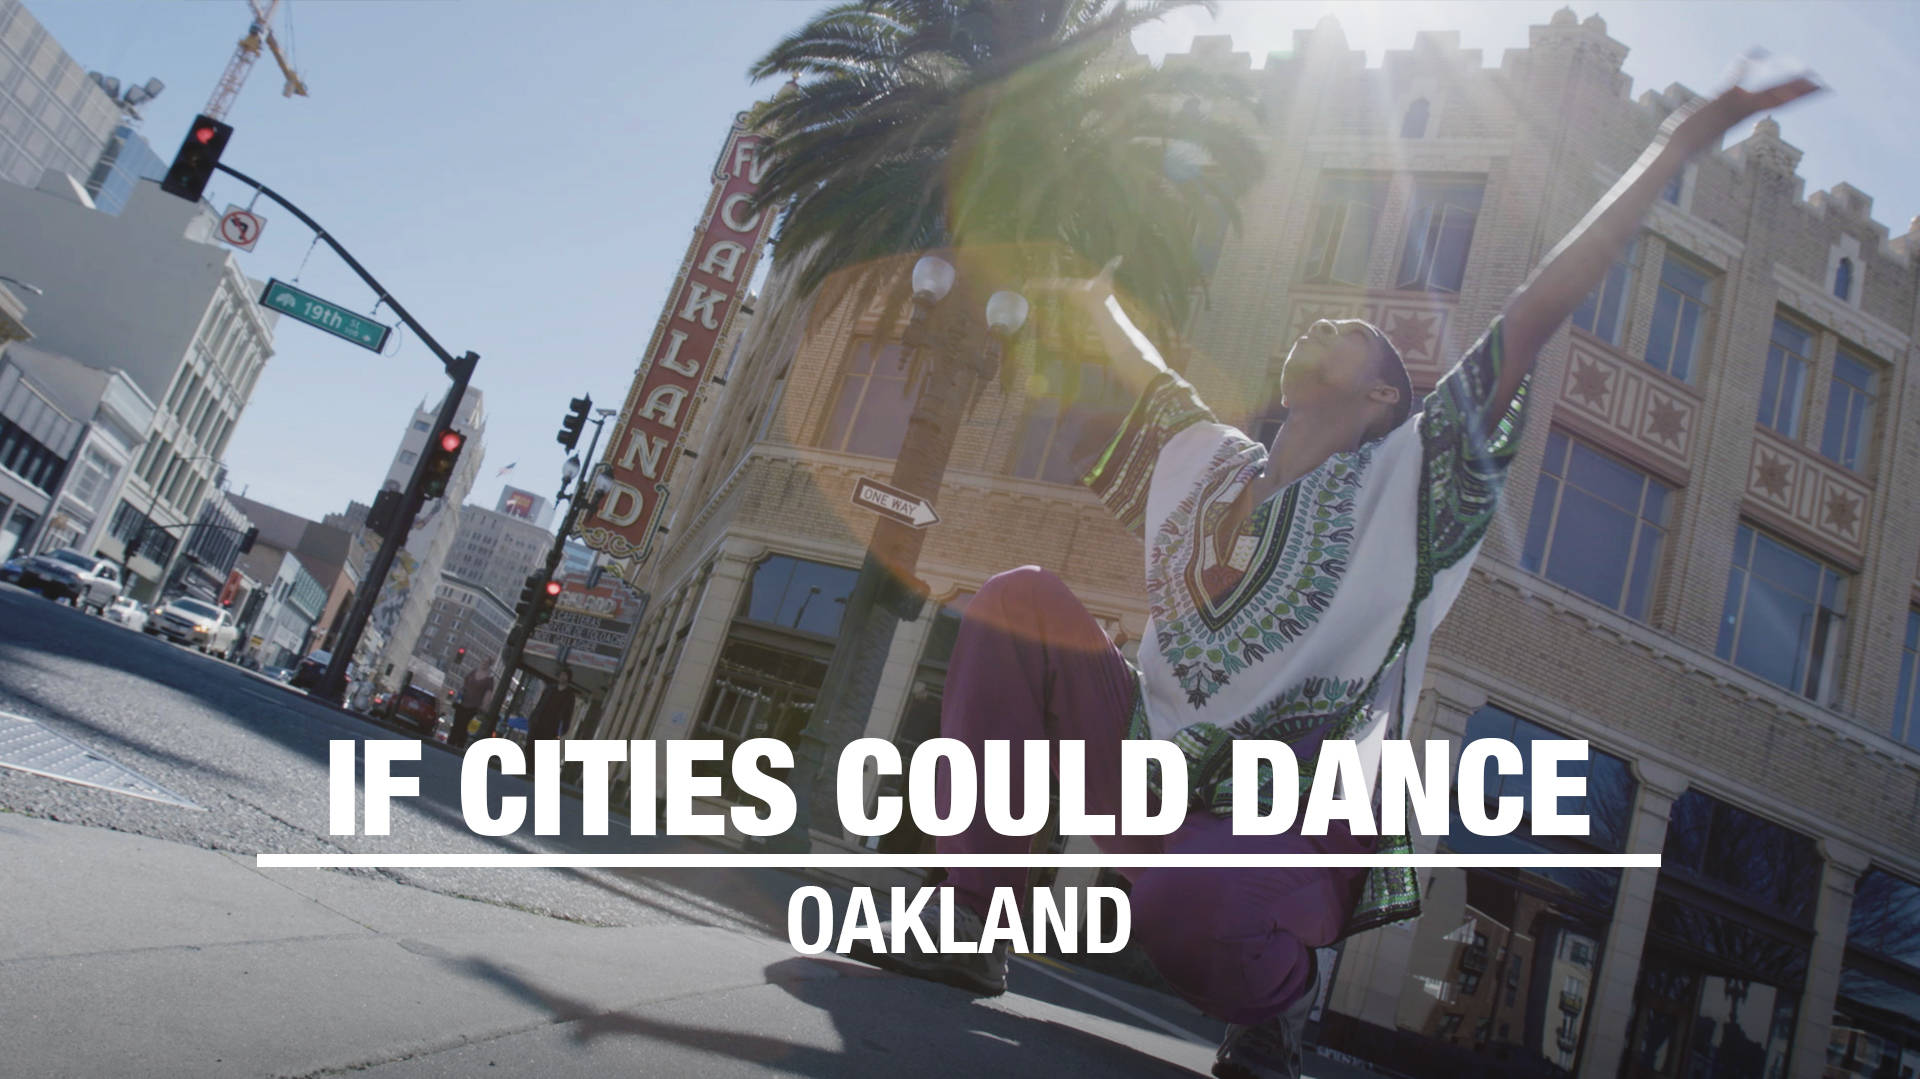 Frankie Lee Peterson III Offers a Praise Dance for the Town